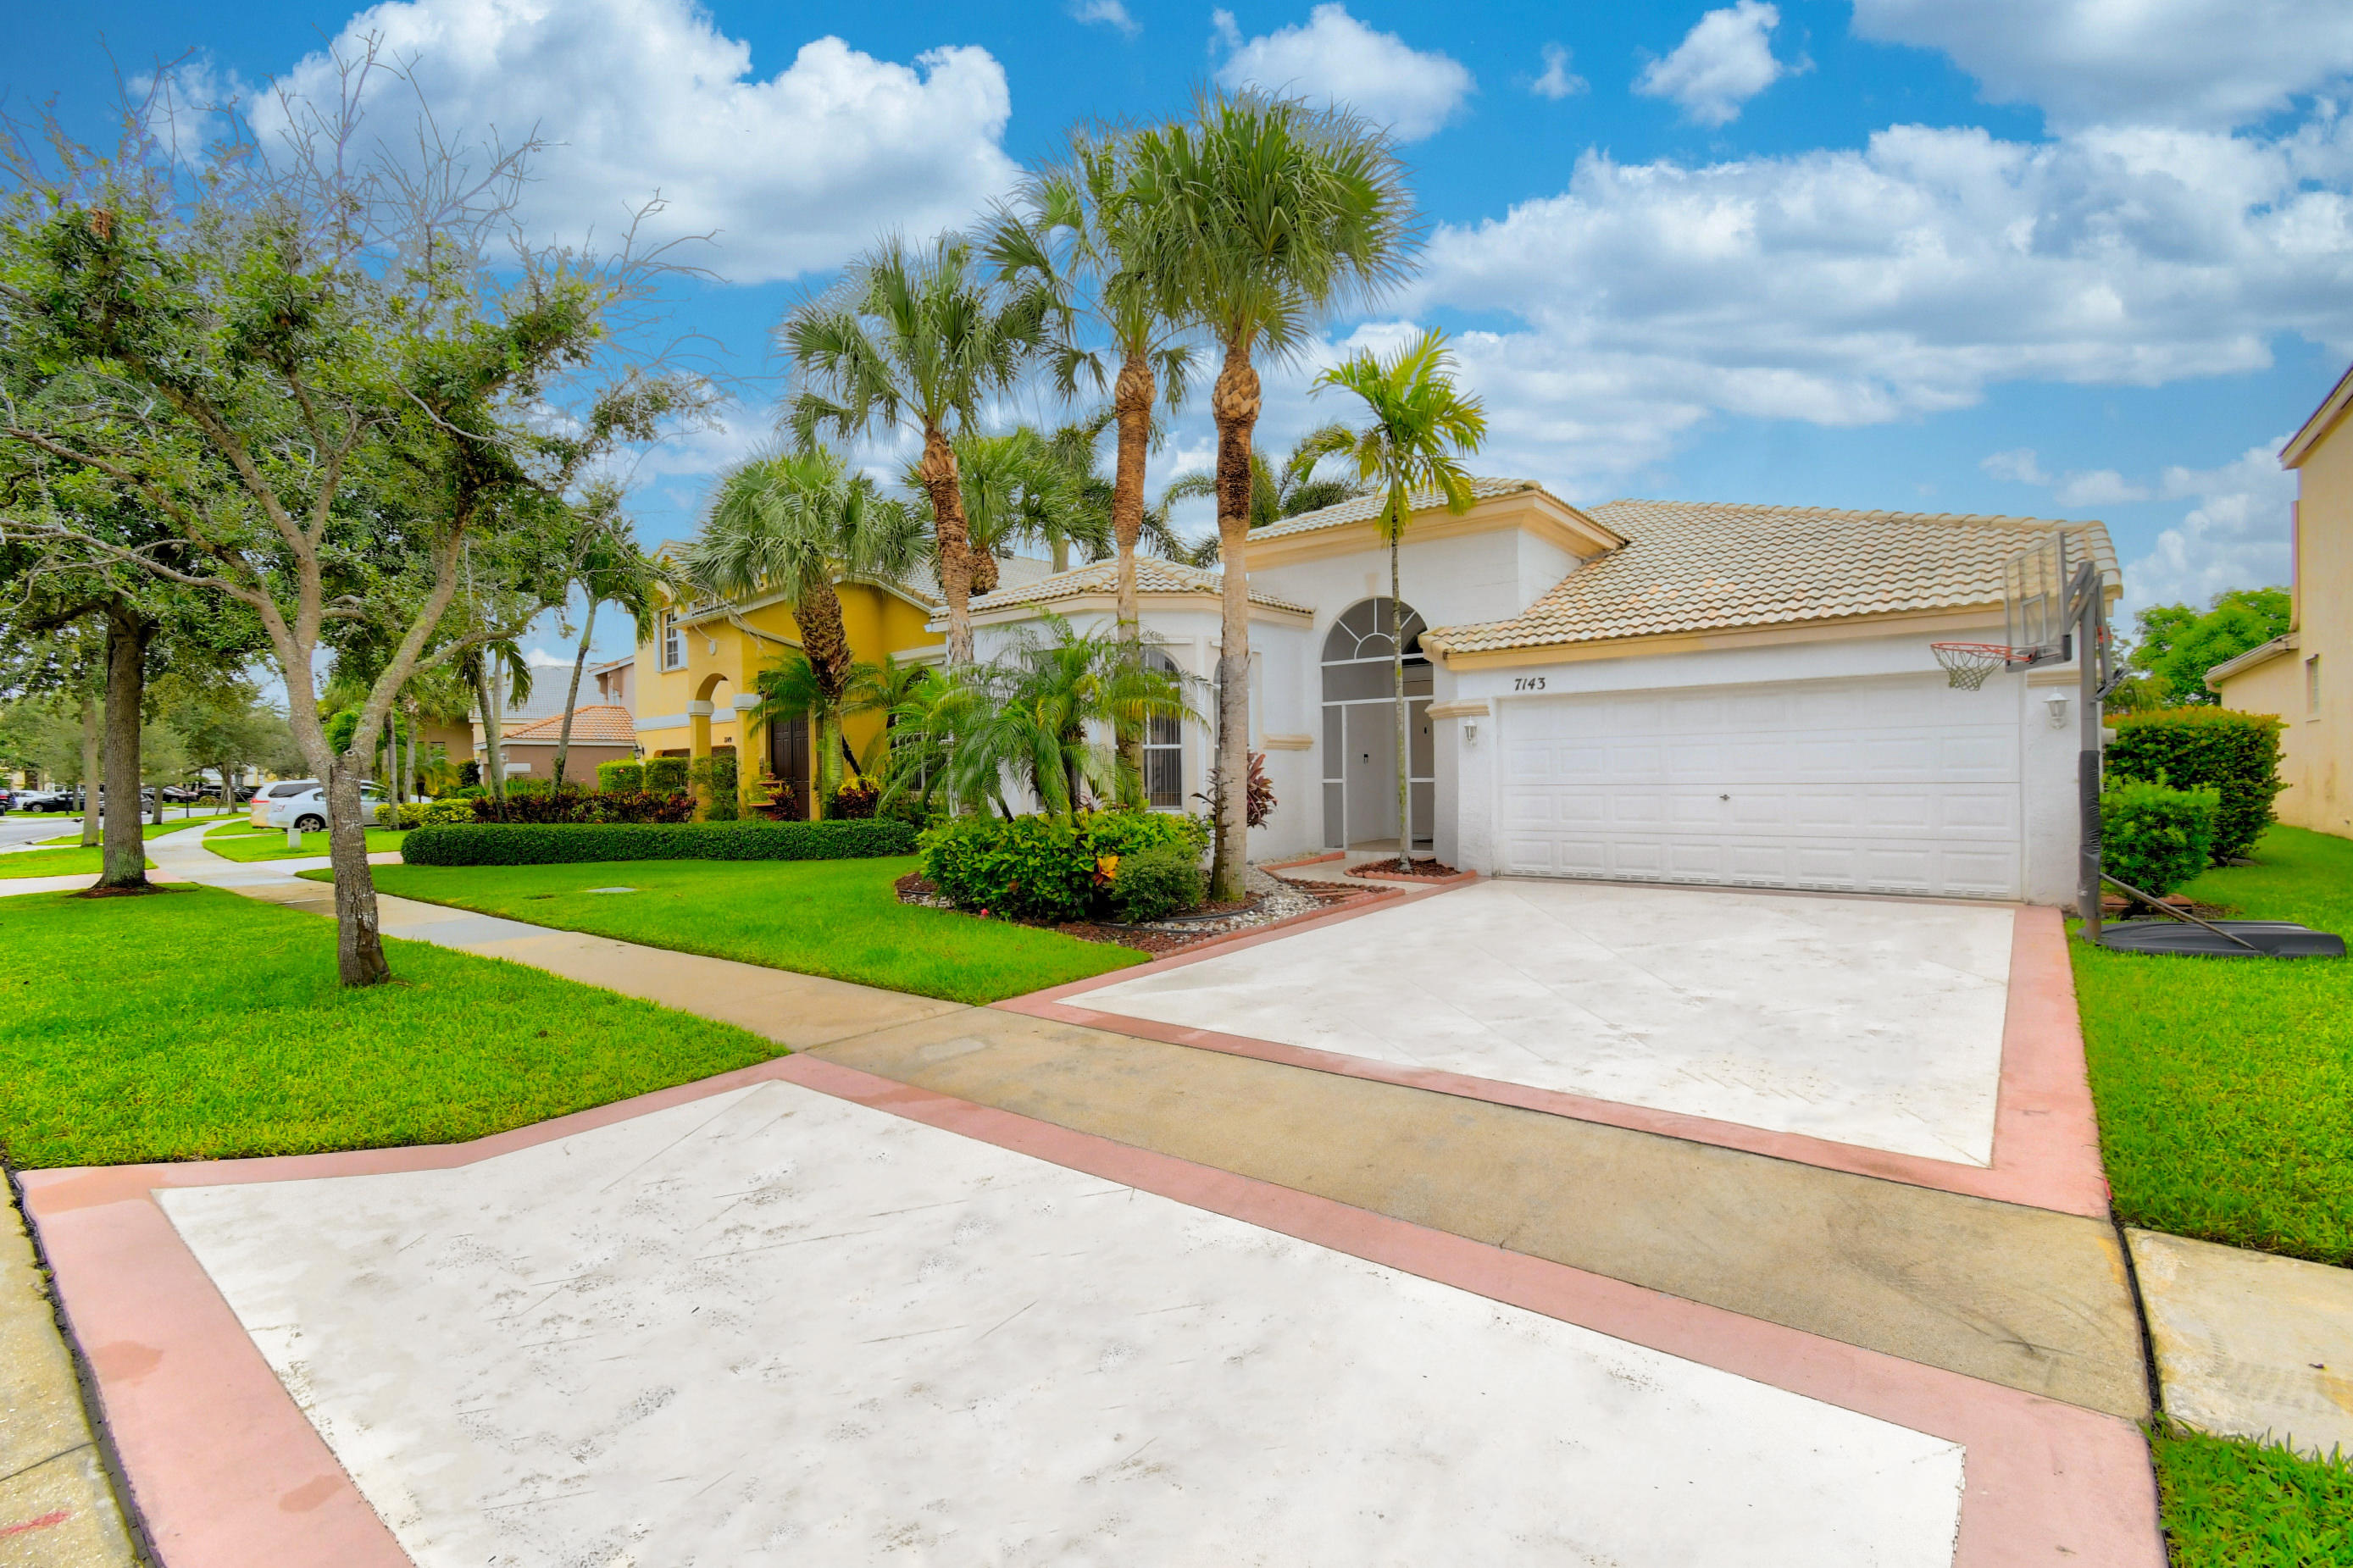 7143 Copperfield Circle, Lake Worth, Florida 33467, 3 Bedrooms Bedrooms, ,2 BathroomsBathrooms,Single family detached,For sale,Copperfield,RX-10606632